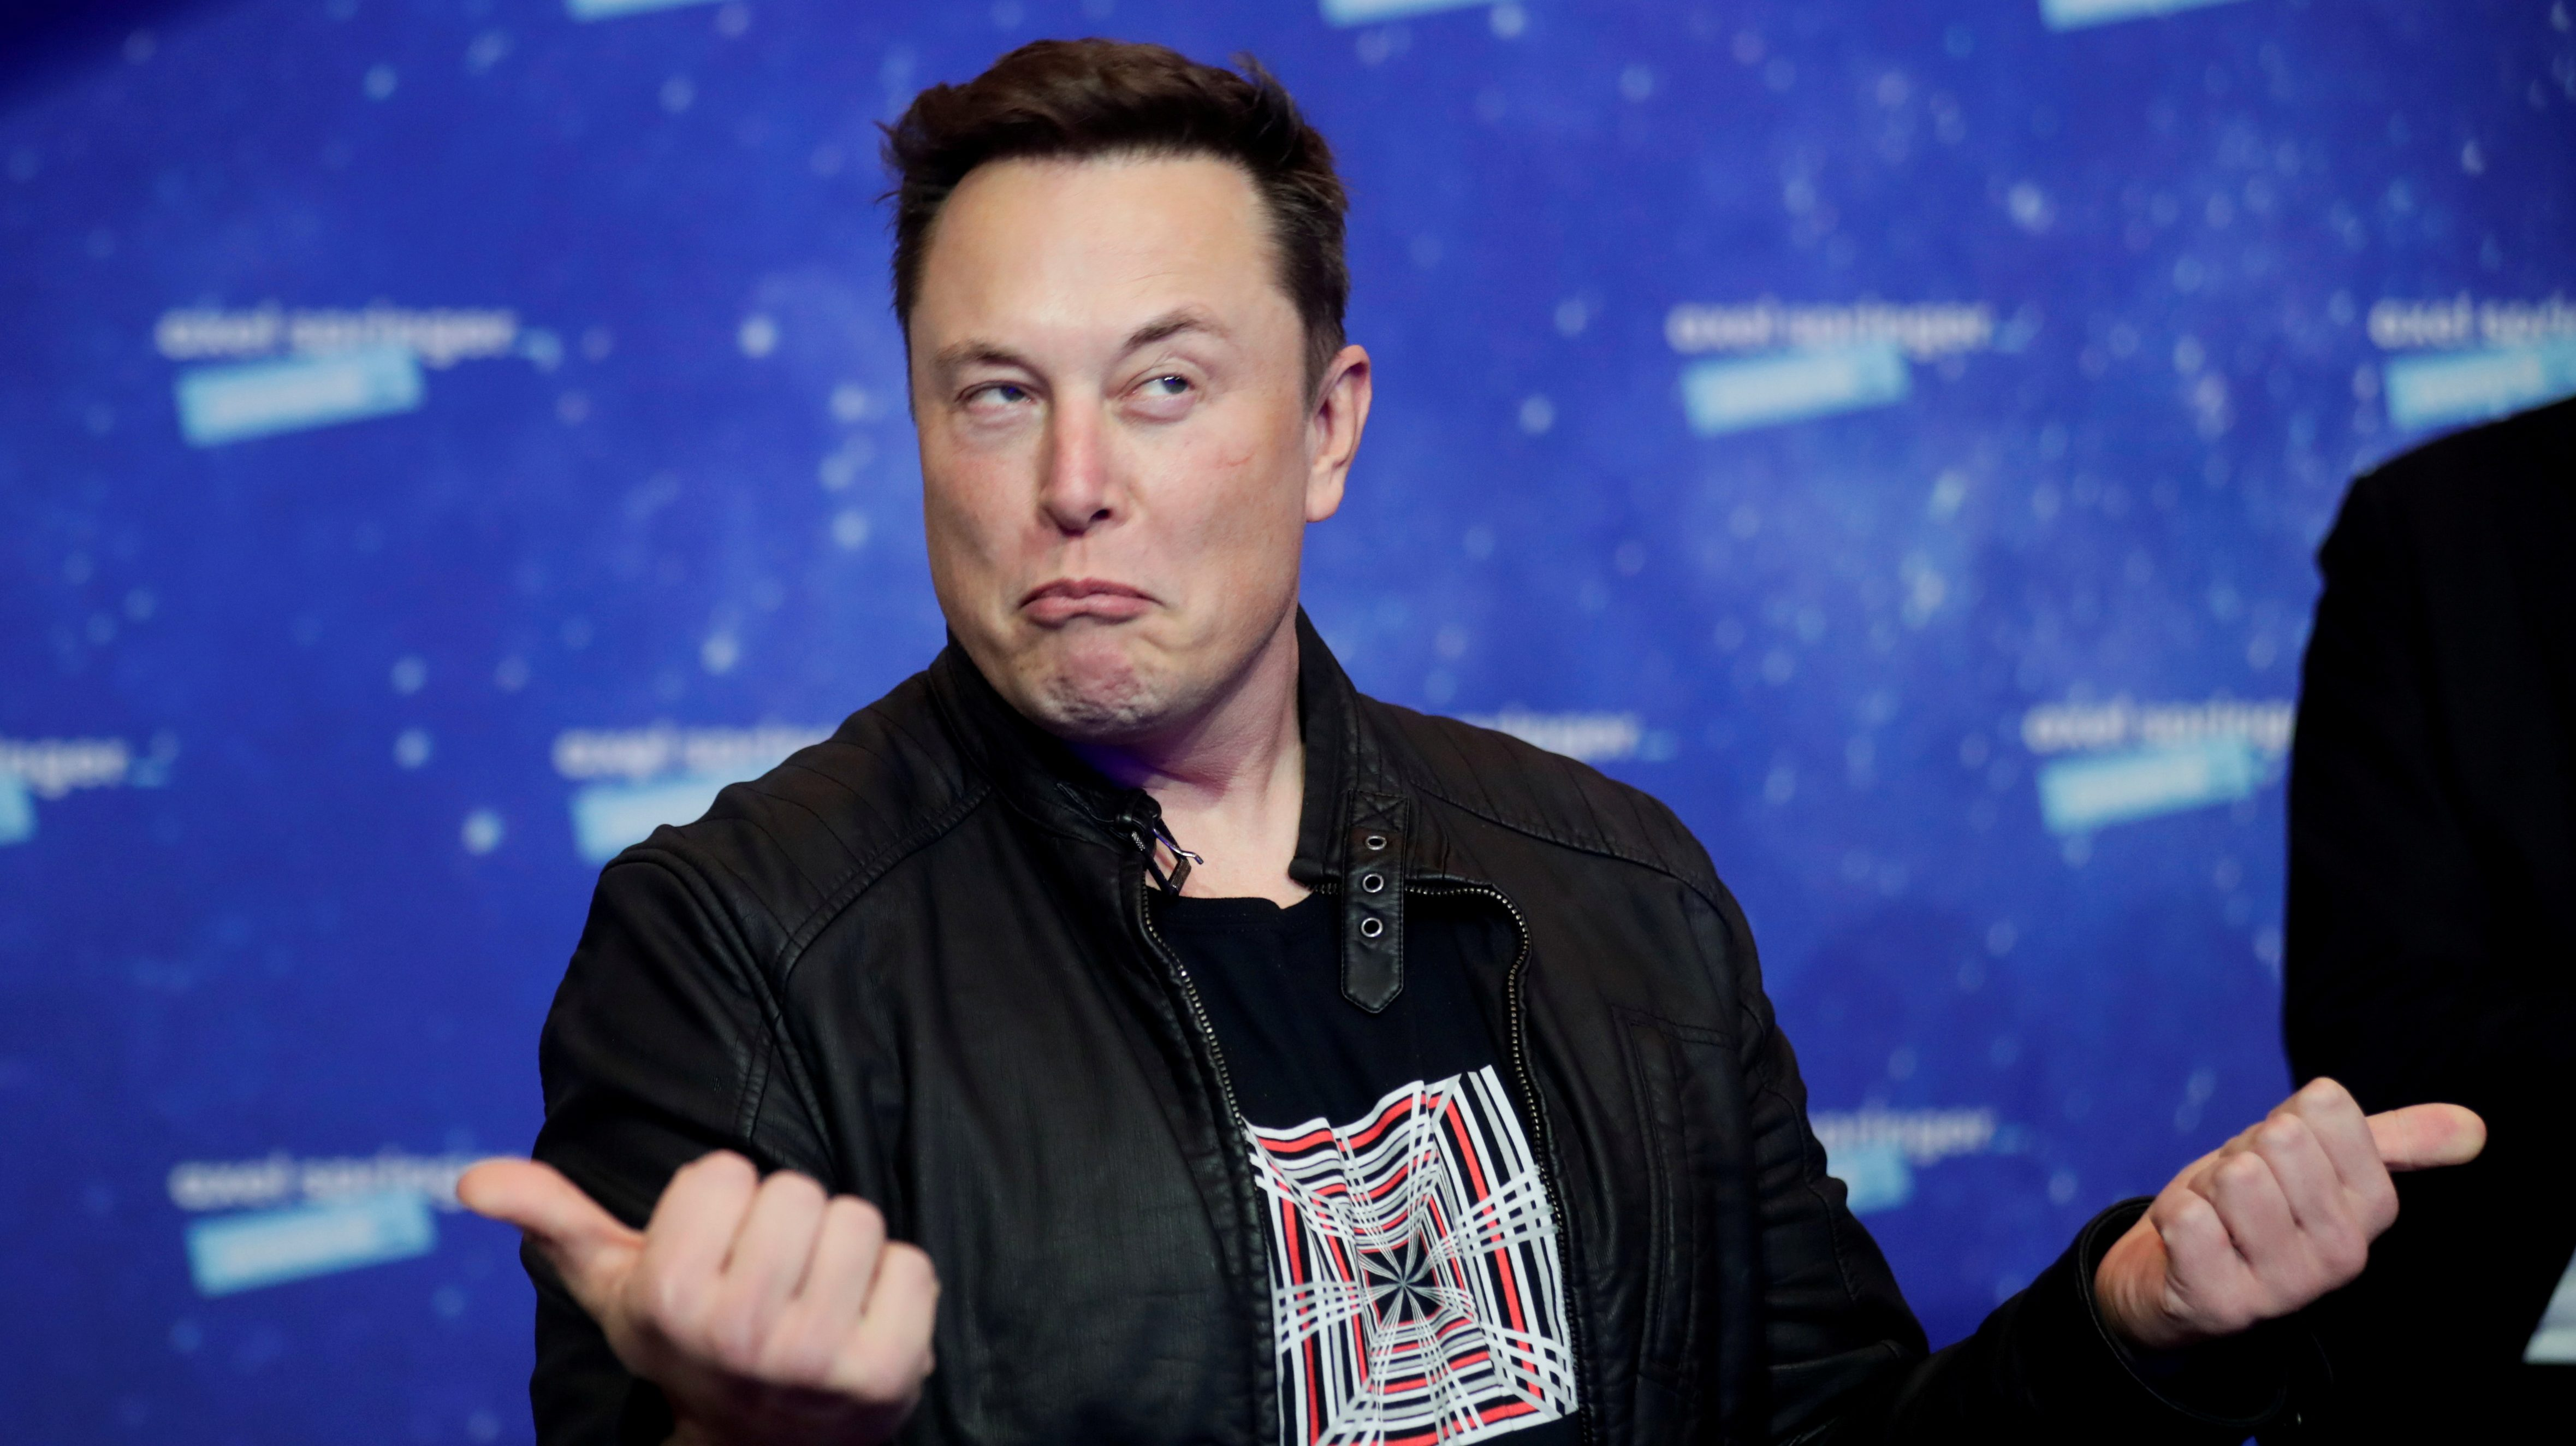 Elon Musk makes a bemused expression similar to a grimace and points his thumbs out while wearing a black t-shirt and black jacket while at an event in Berlin, Germany.